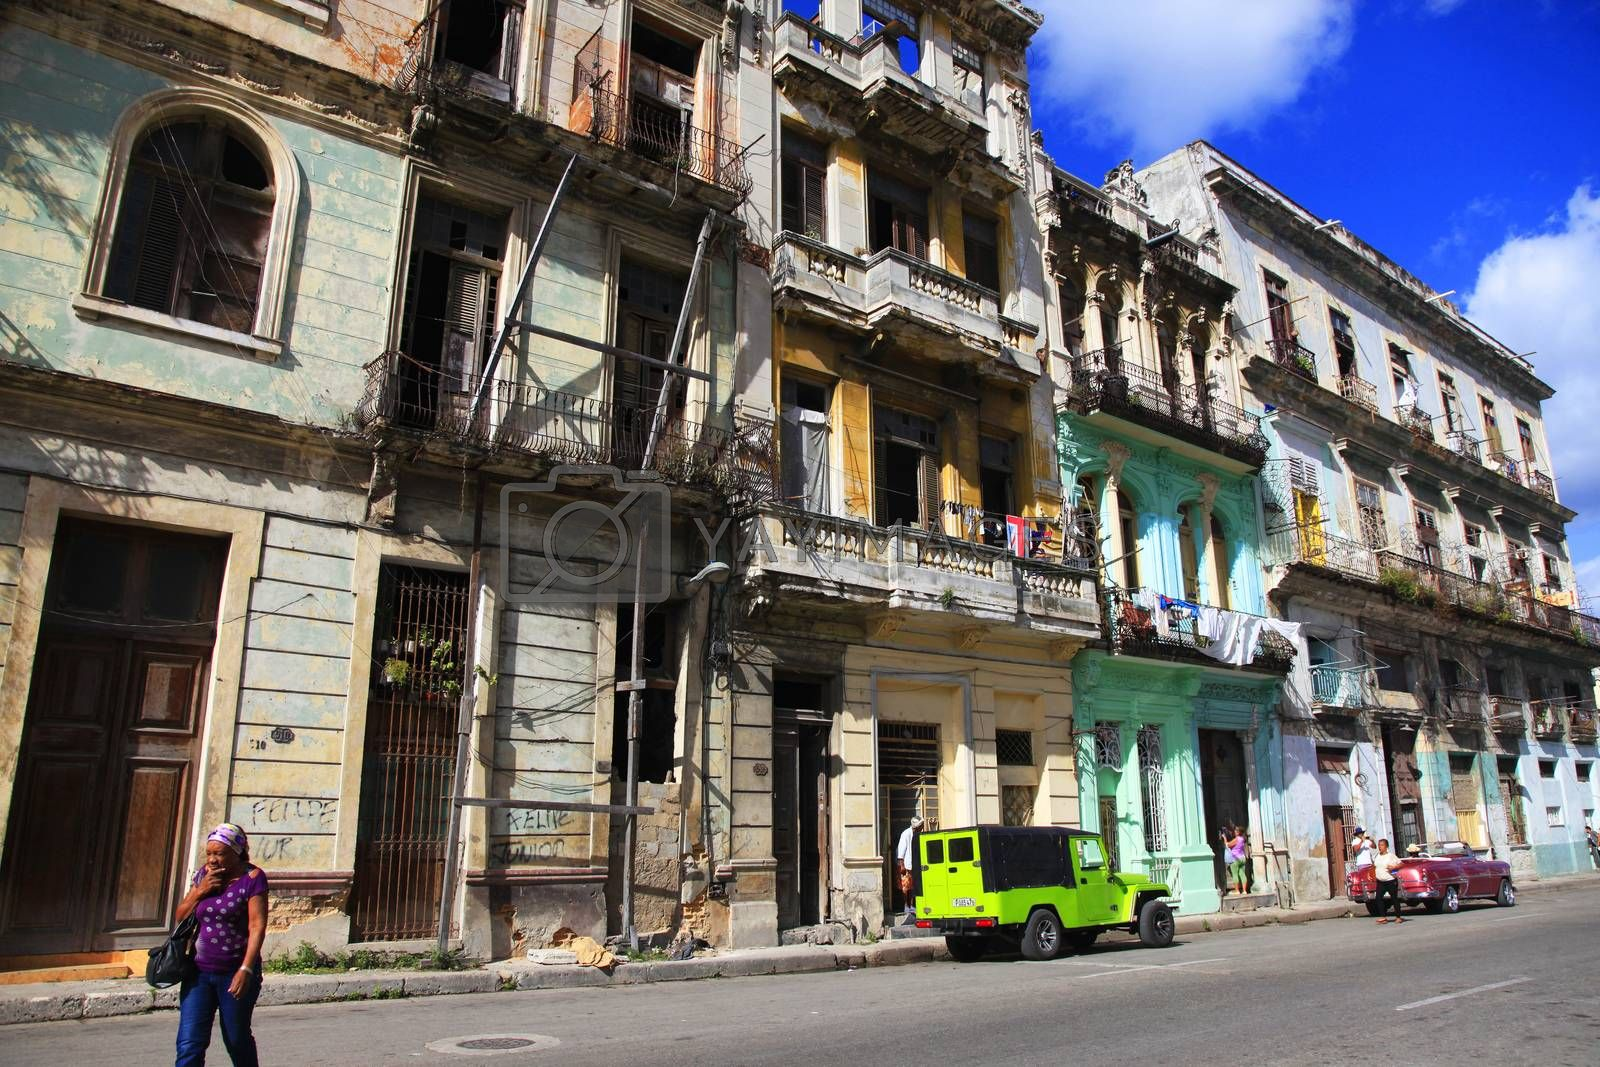 Royalty free image of Vintage cars on the streets of colorful Havana by friday